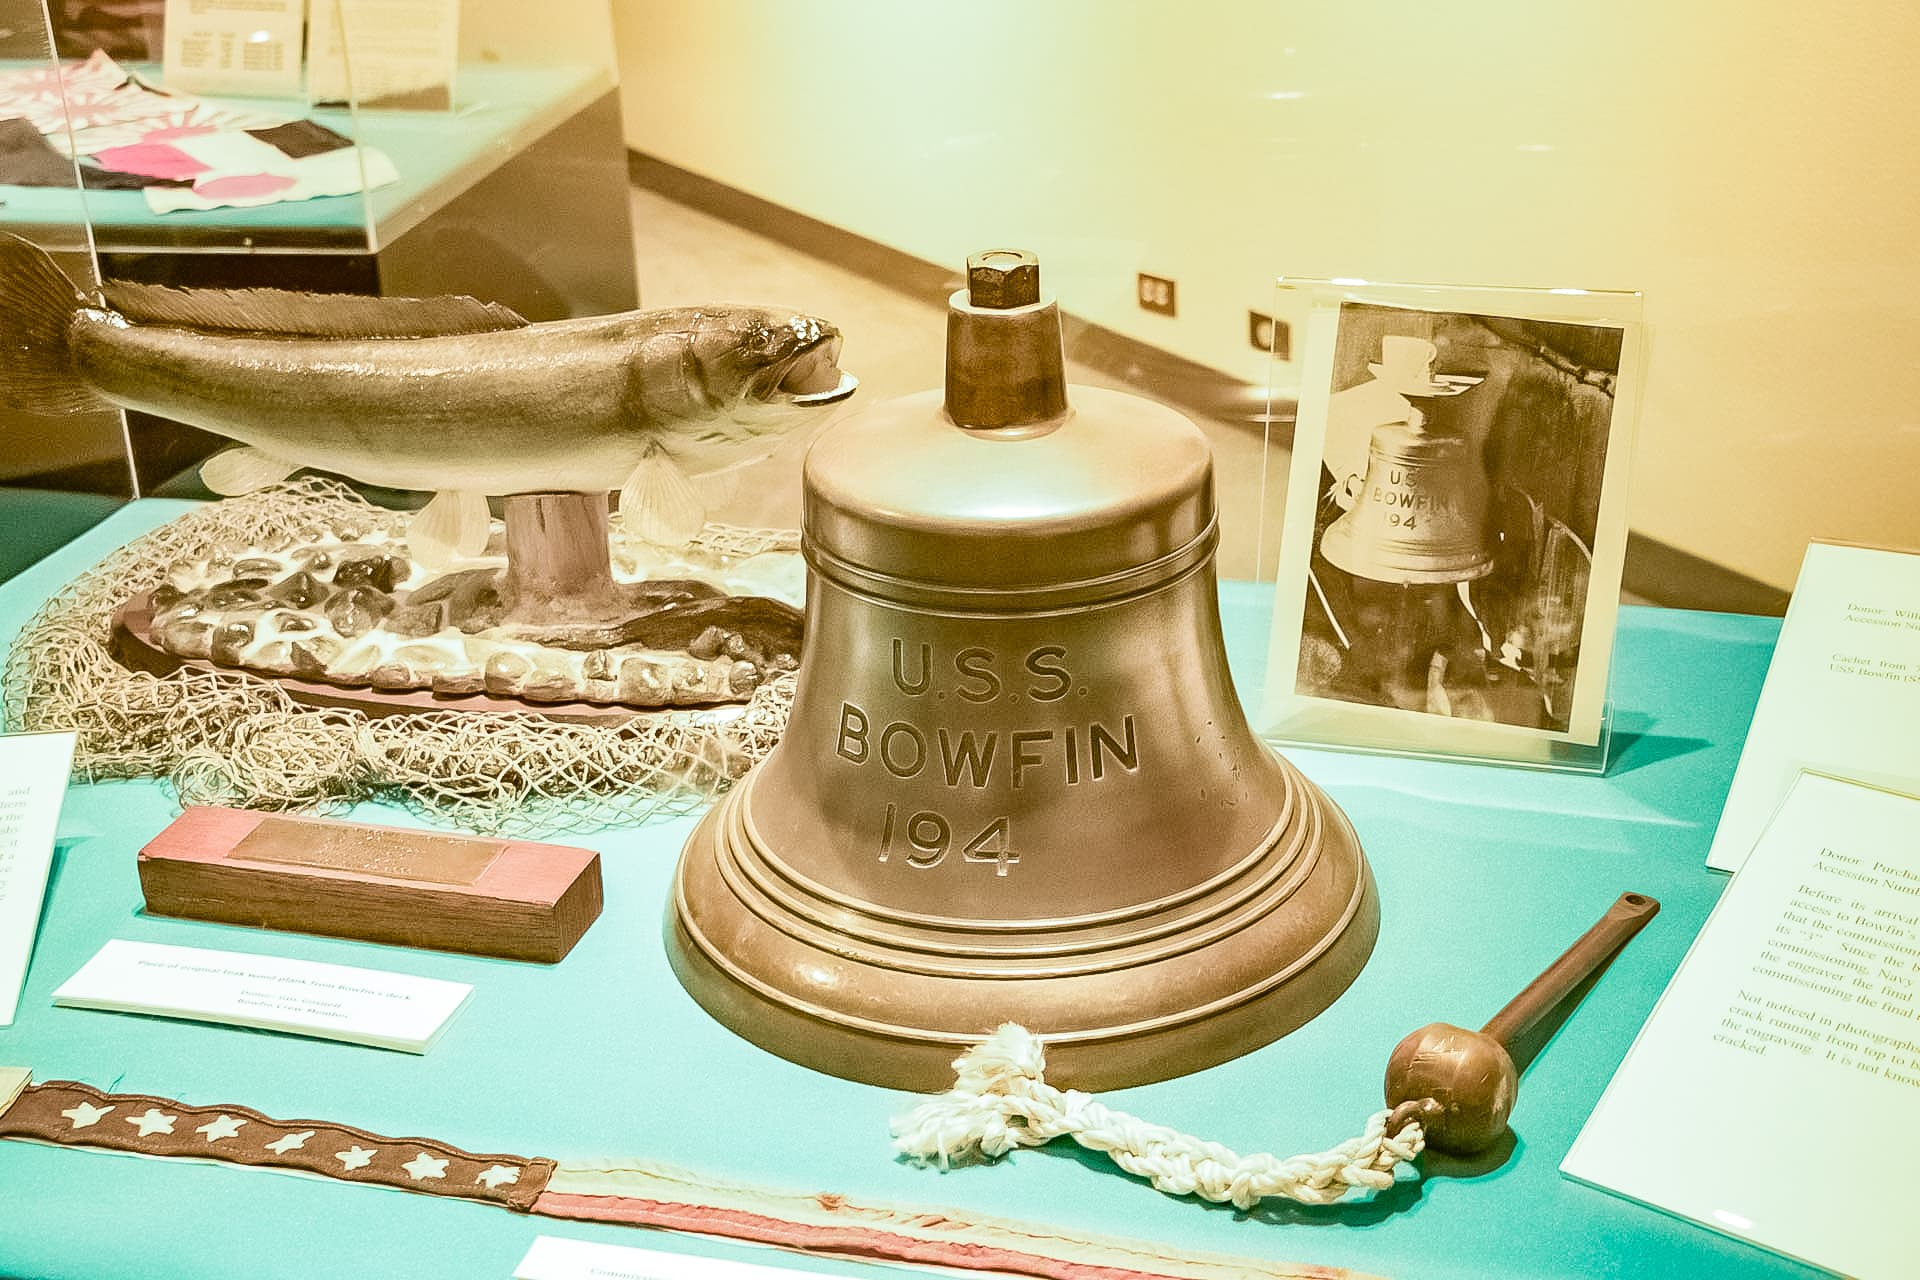 USS Bowfin Submarine Bell and Artifacts in Submarine Museum